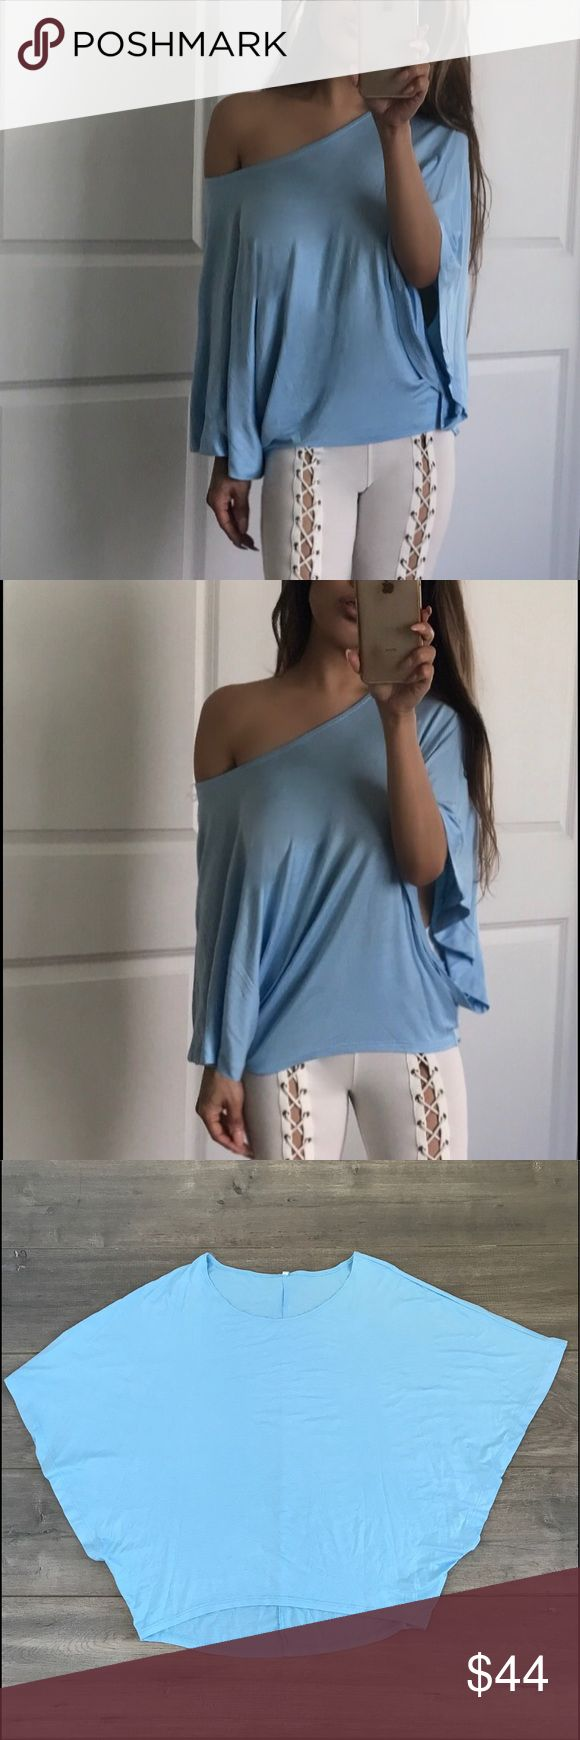 "🆕 ""ATHENS"" Dolman Batwing Top 💛✨Feminine beauty...a loose fit dolman batwing sleeve top...Smooth and slinky...gorgeous ""Crystal blue"" color in 95% rayon 5% spandex. *Medium measures 33"" chest/ 25.5"" hem front/ 27.5"" hem back. I'm modeling small. ✨ boutique Tops Tunics"